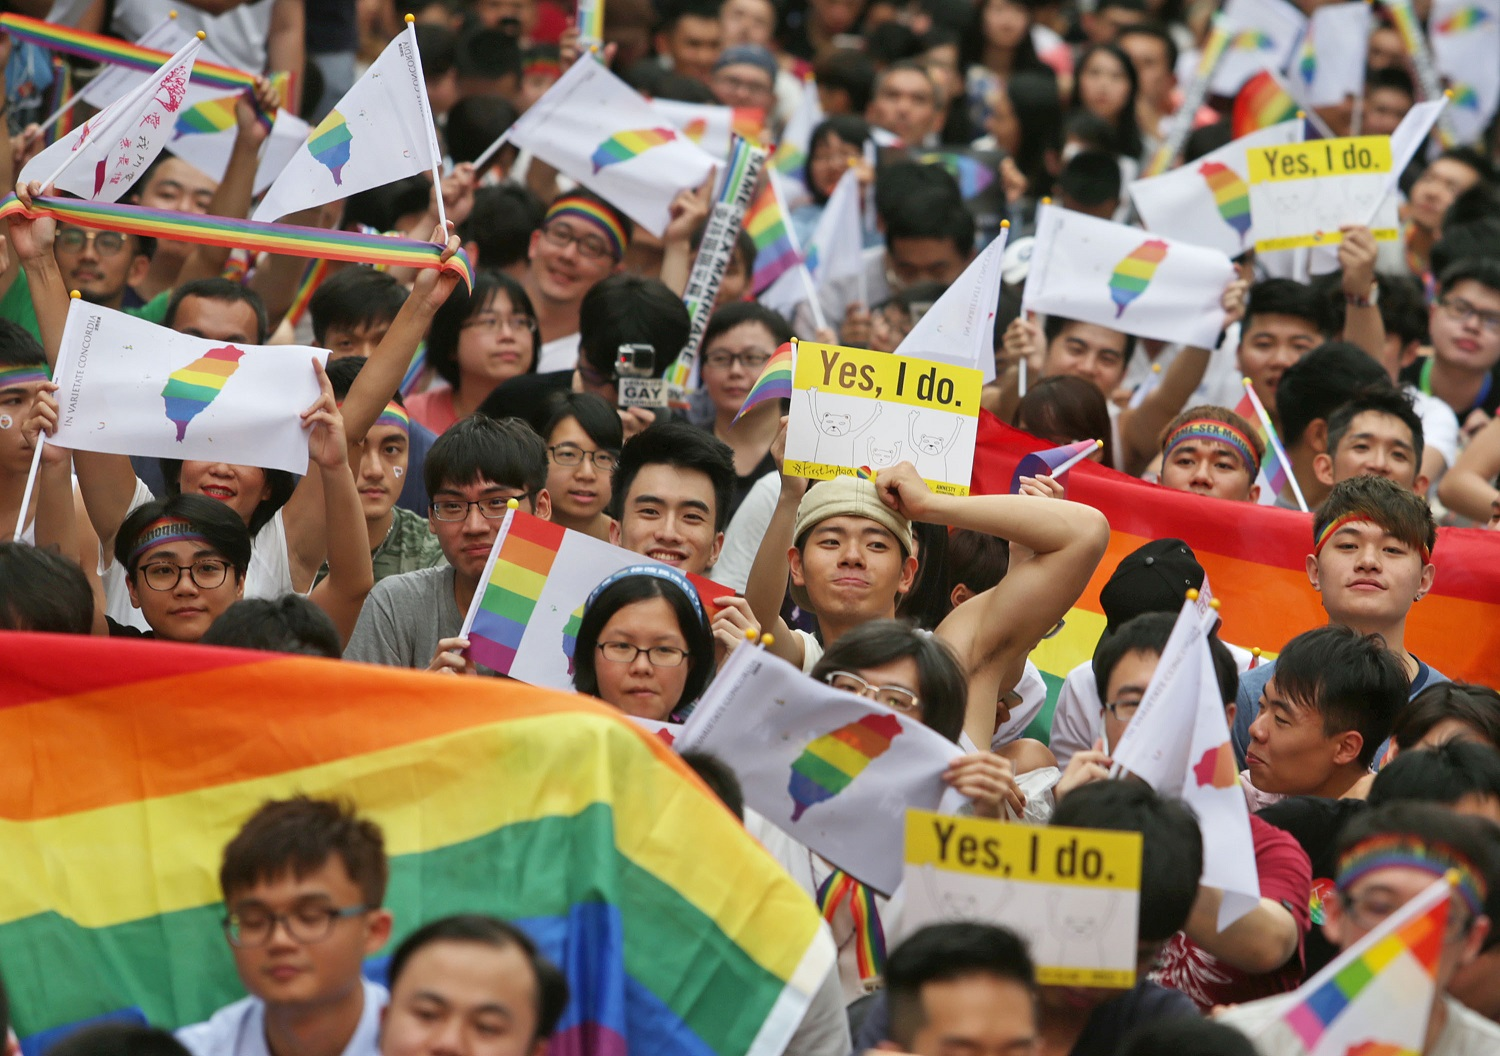 Constitutional Court ruled that same-sex couples have the right to marry